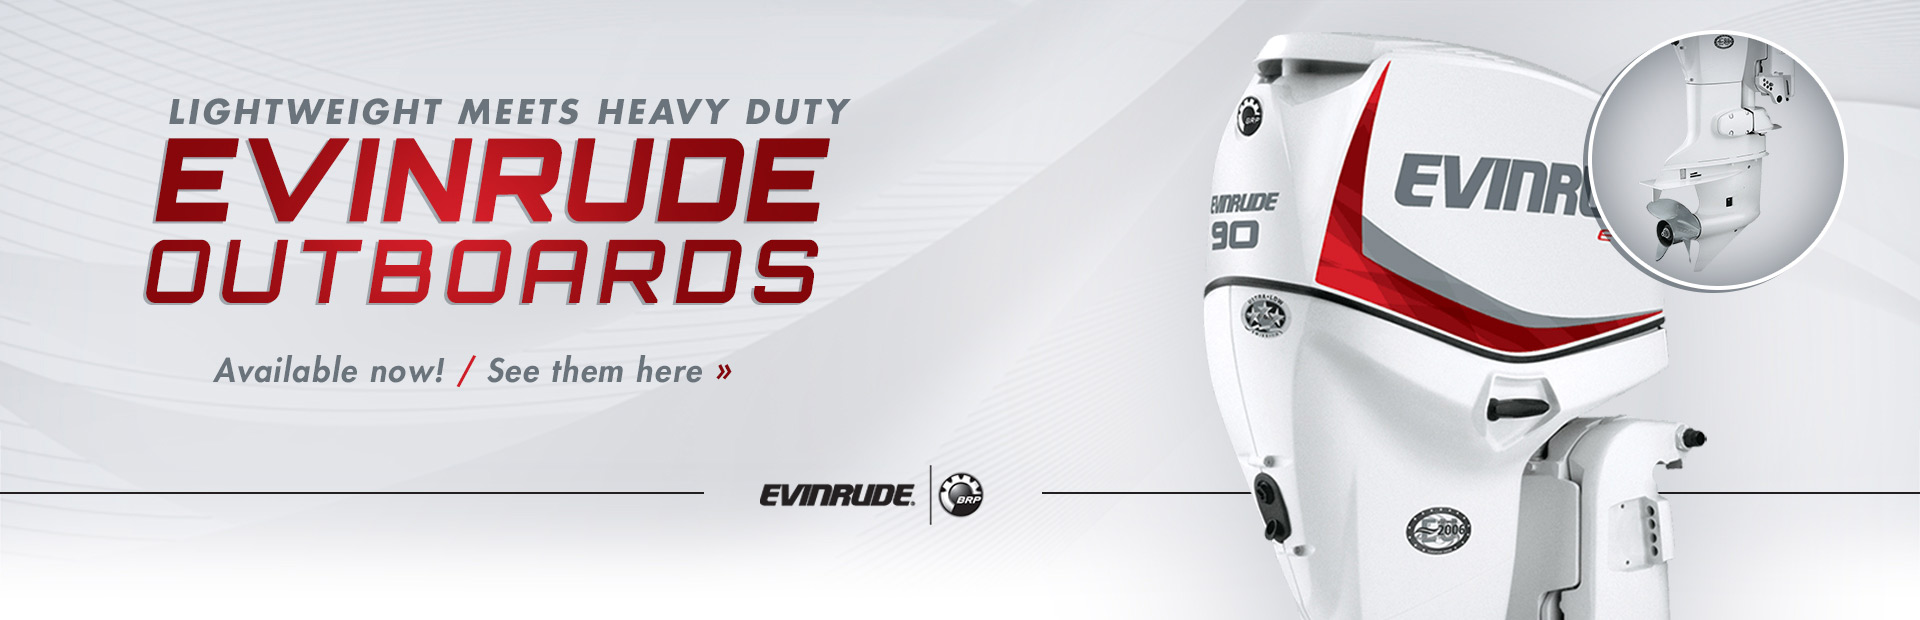 Evinrude Outboards: Click here to view the models.